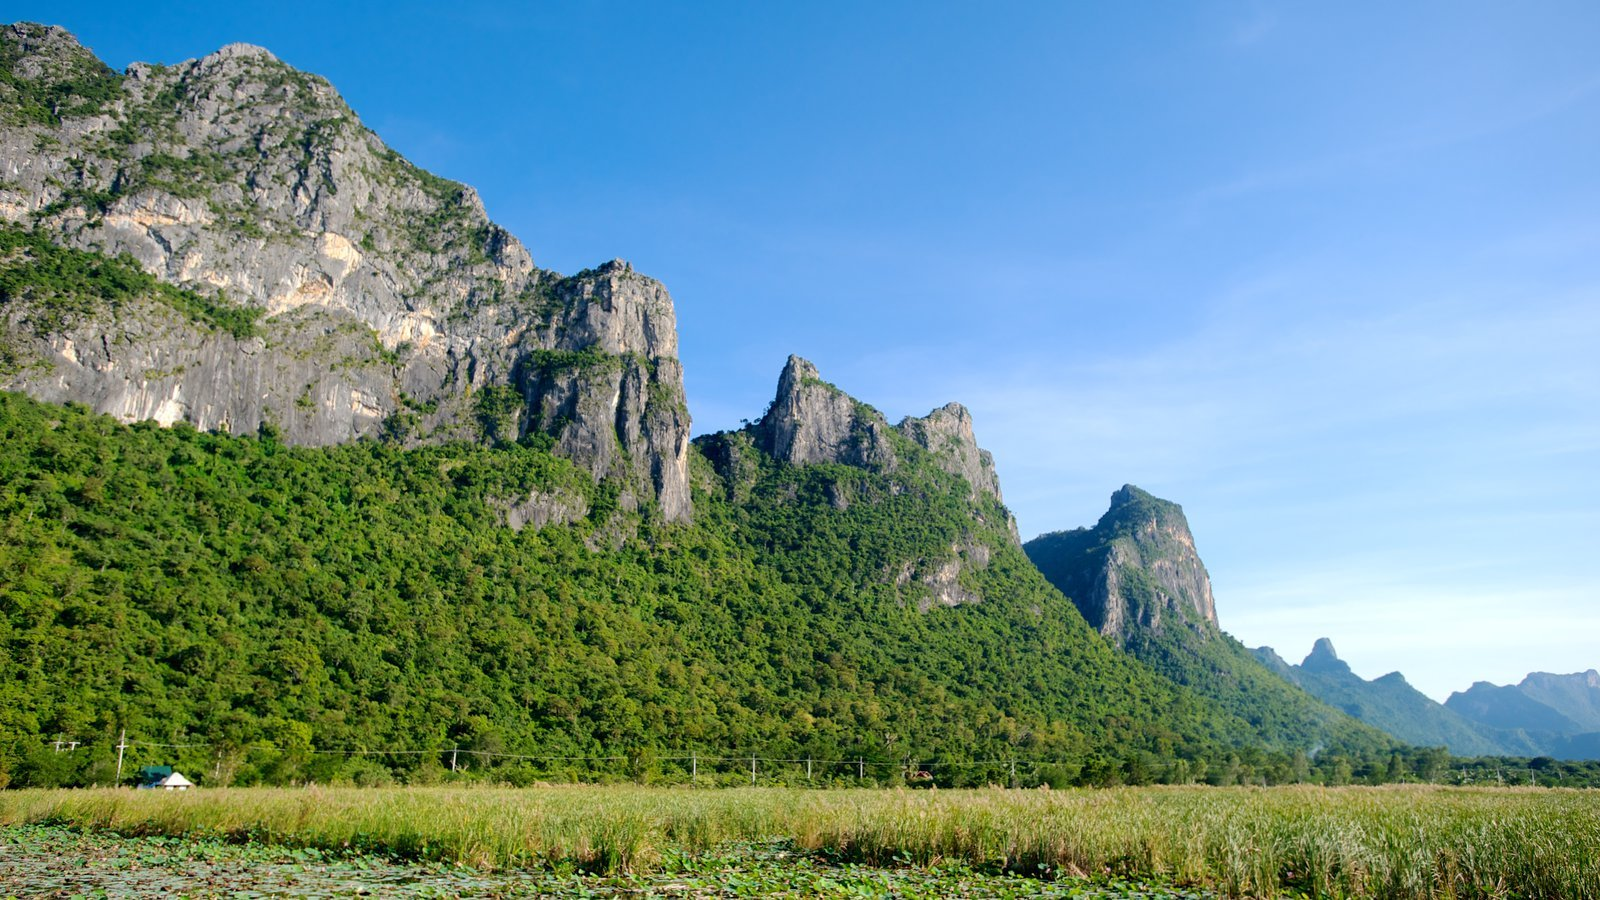 57986-Khao-Sam-Roi-Yot-National-Park.jpg